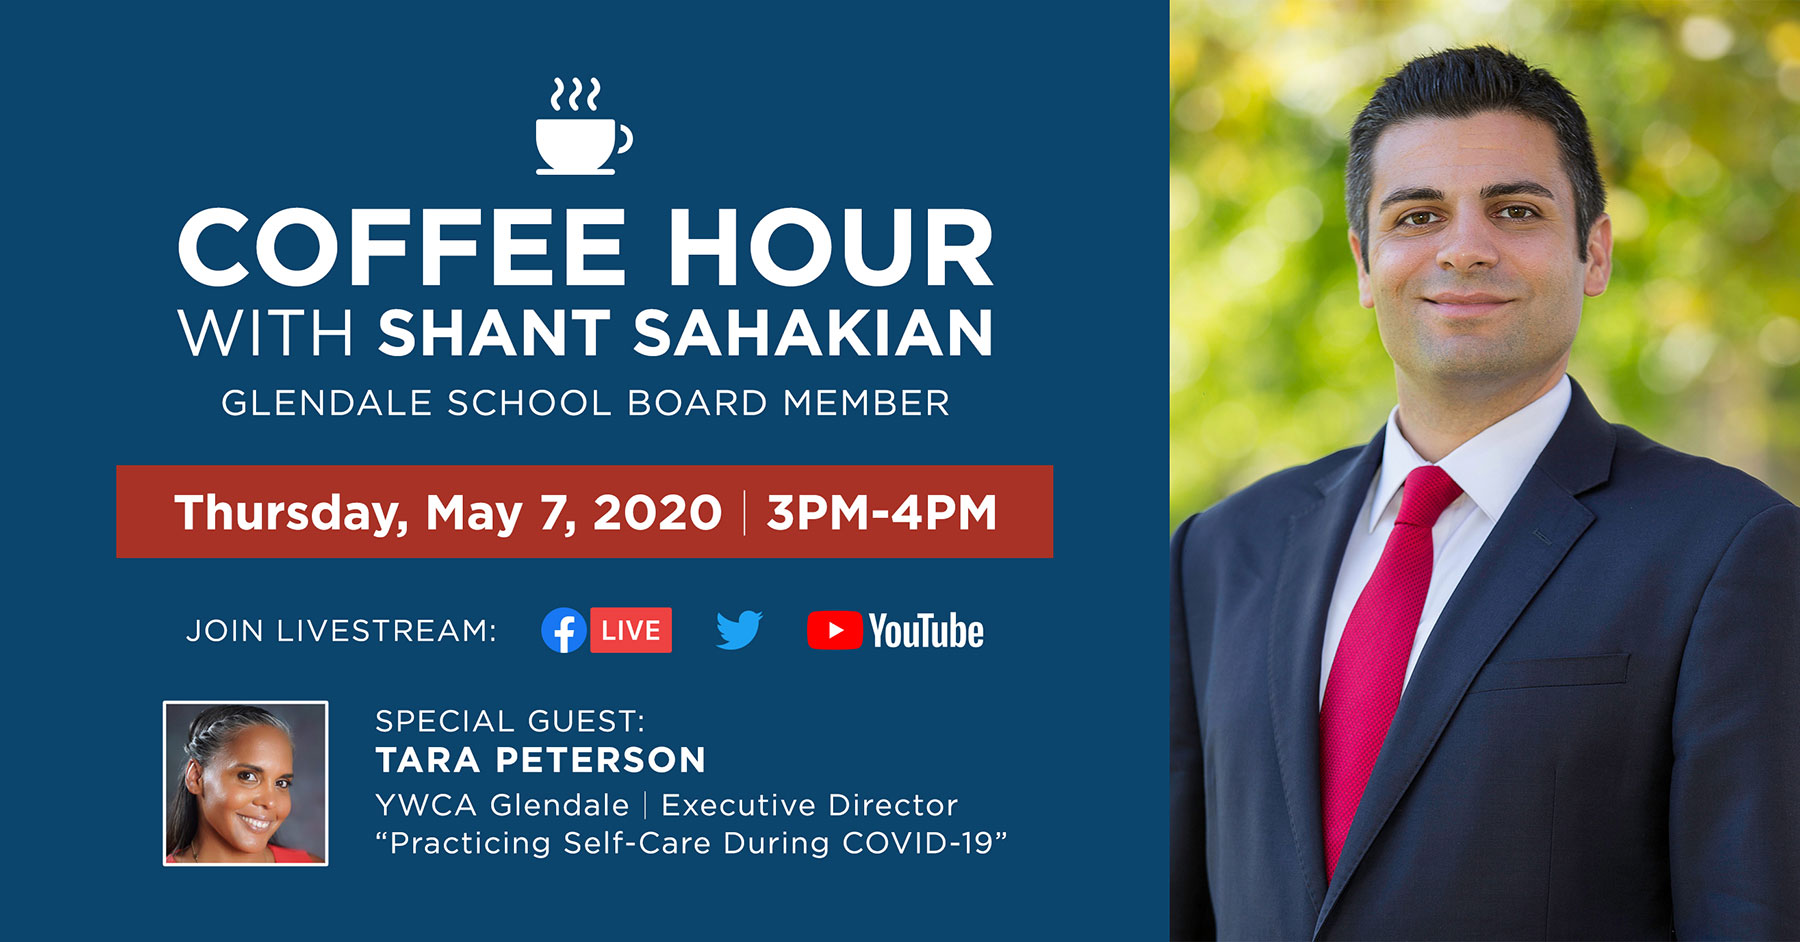 Glendale School Board Member Shant Sahakian Coffee Hour Event Flyer